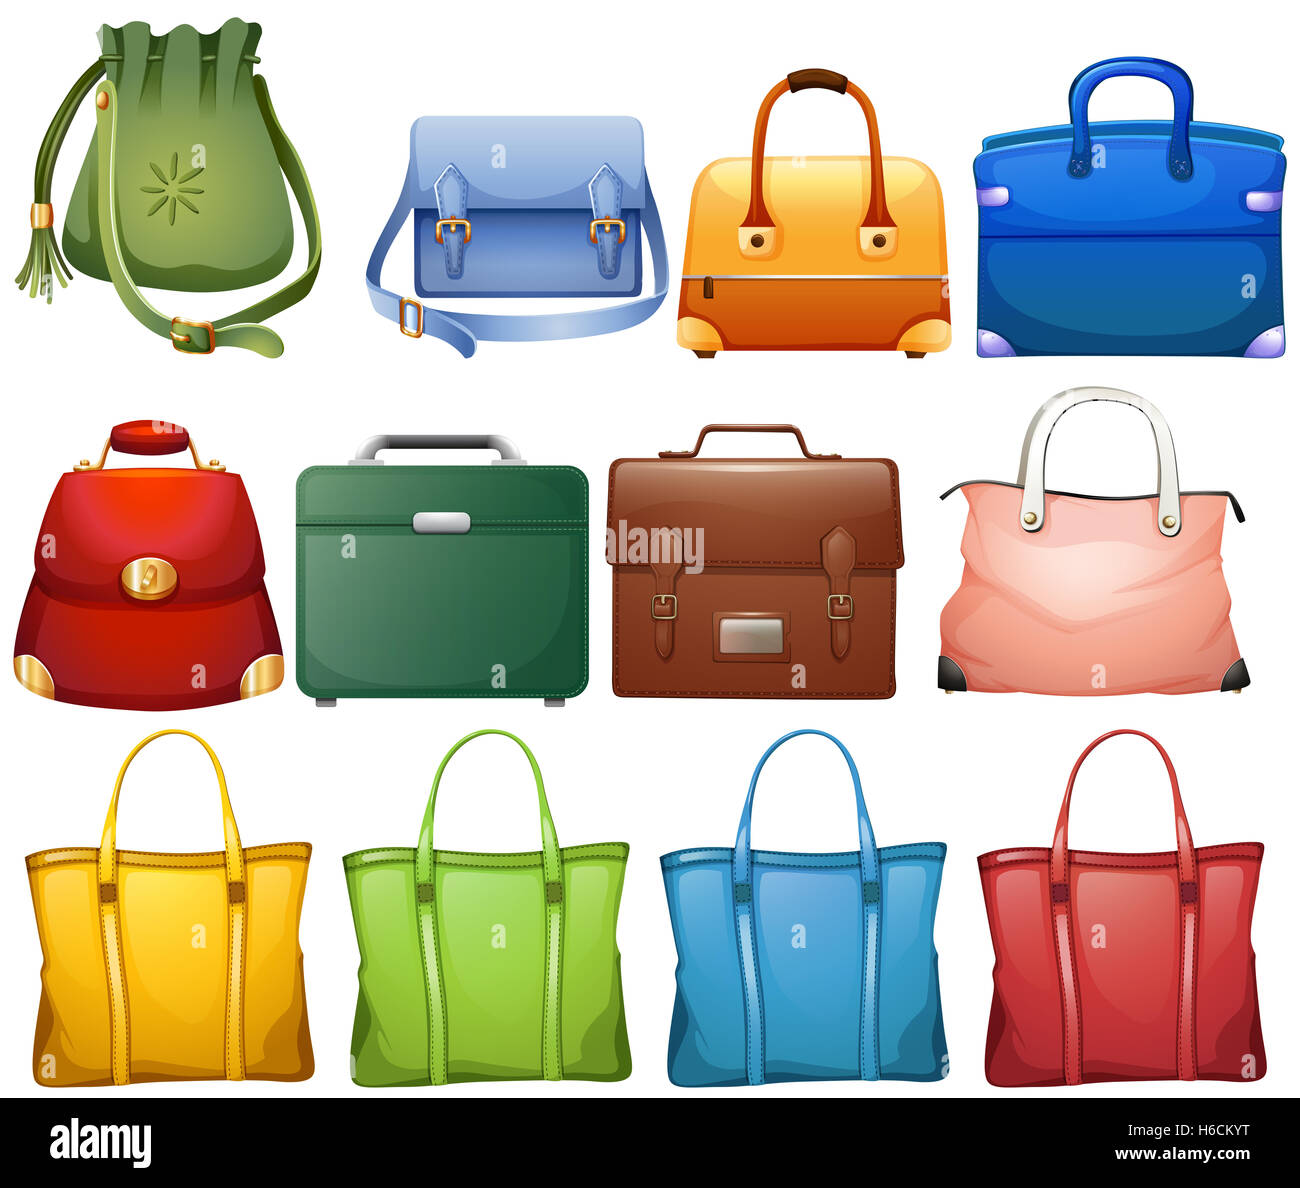 7fe4226b1f Different design of handbags illustration Stock Photo  124439612 - Alamy